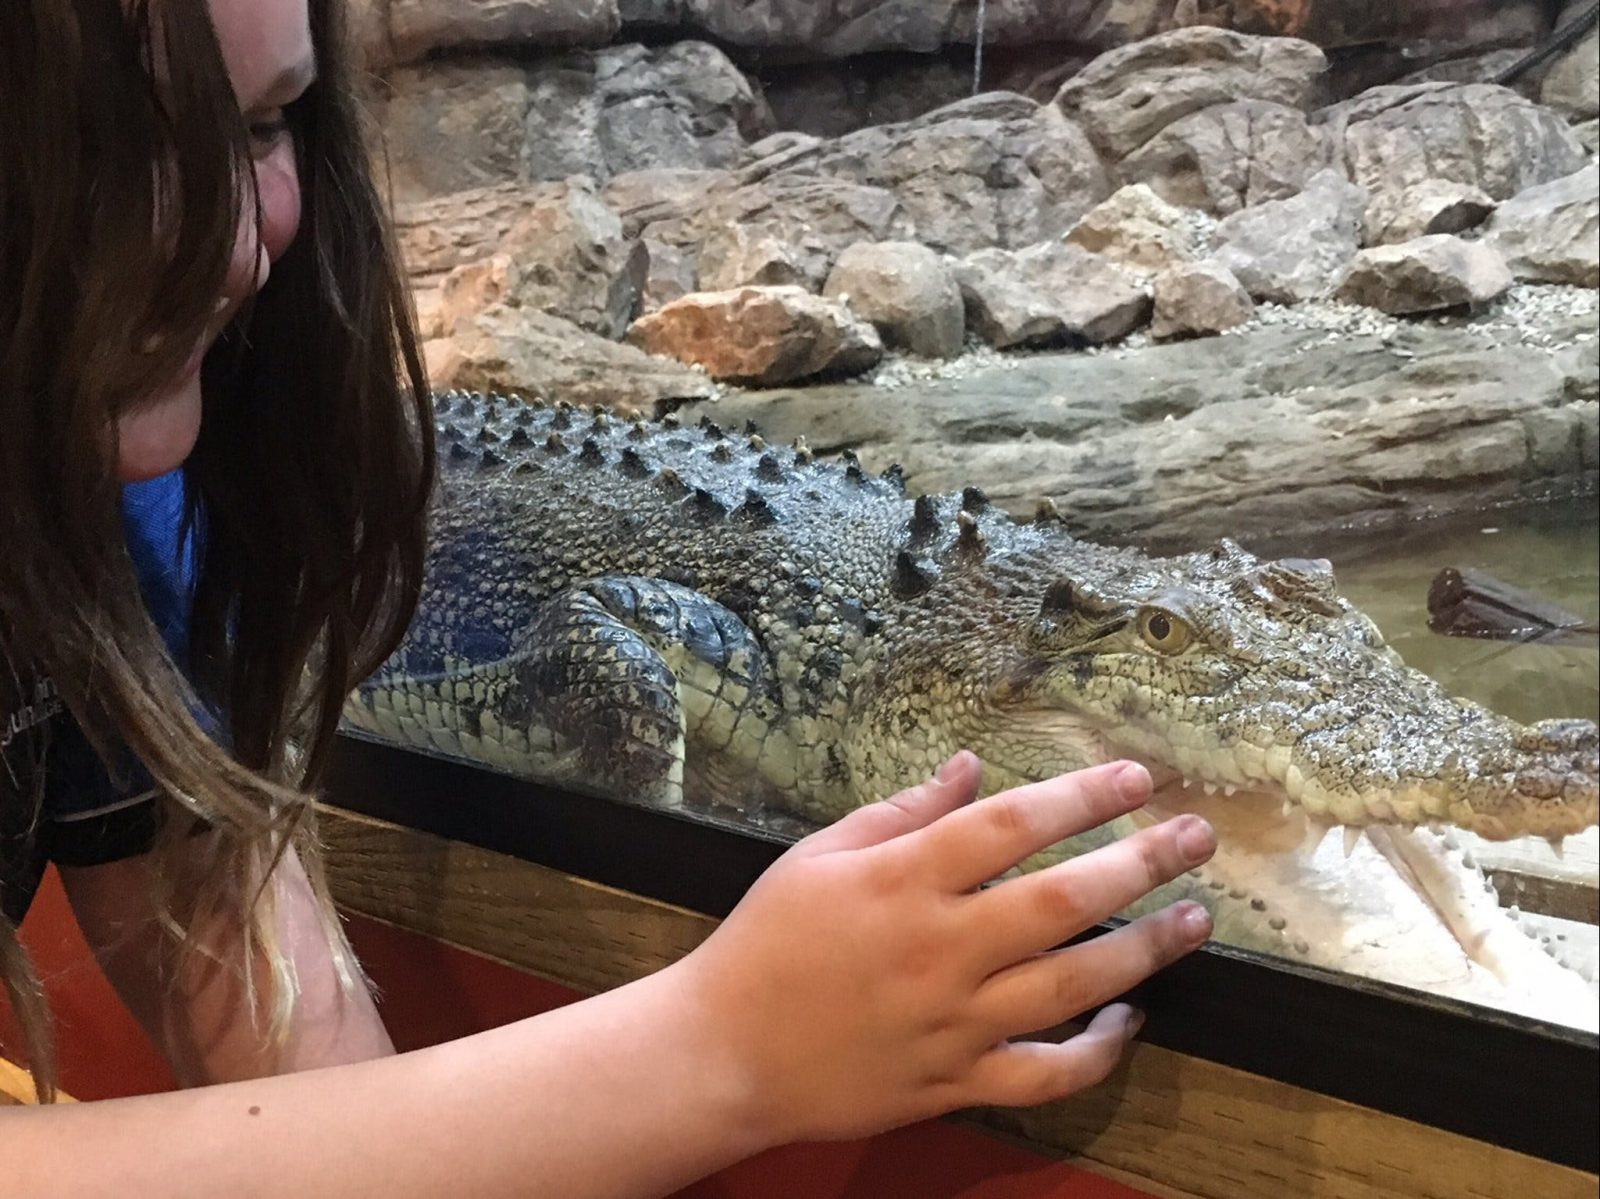 Girl looking at a baby crocodile behind the glass